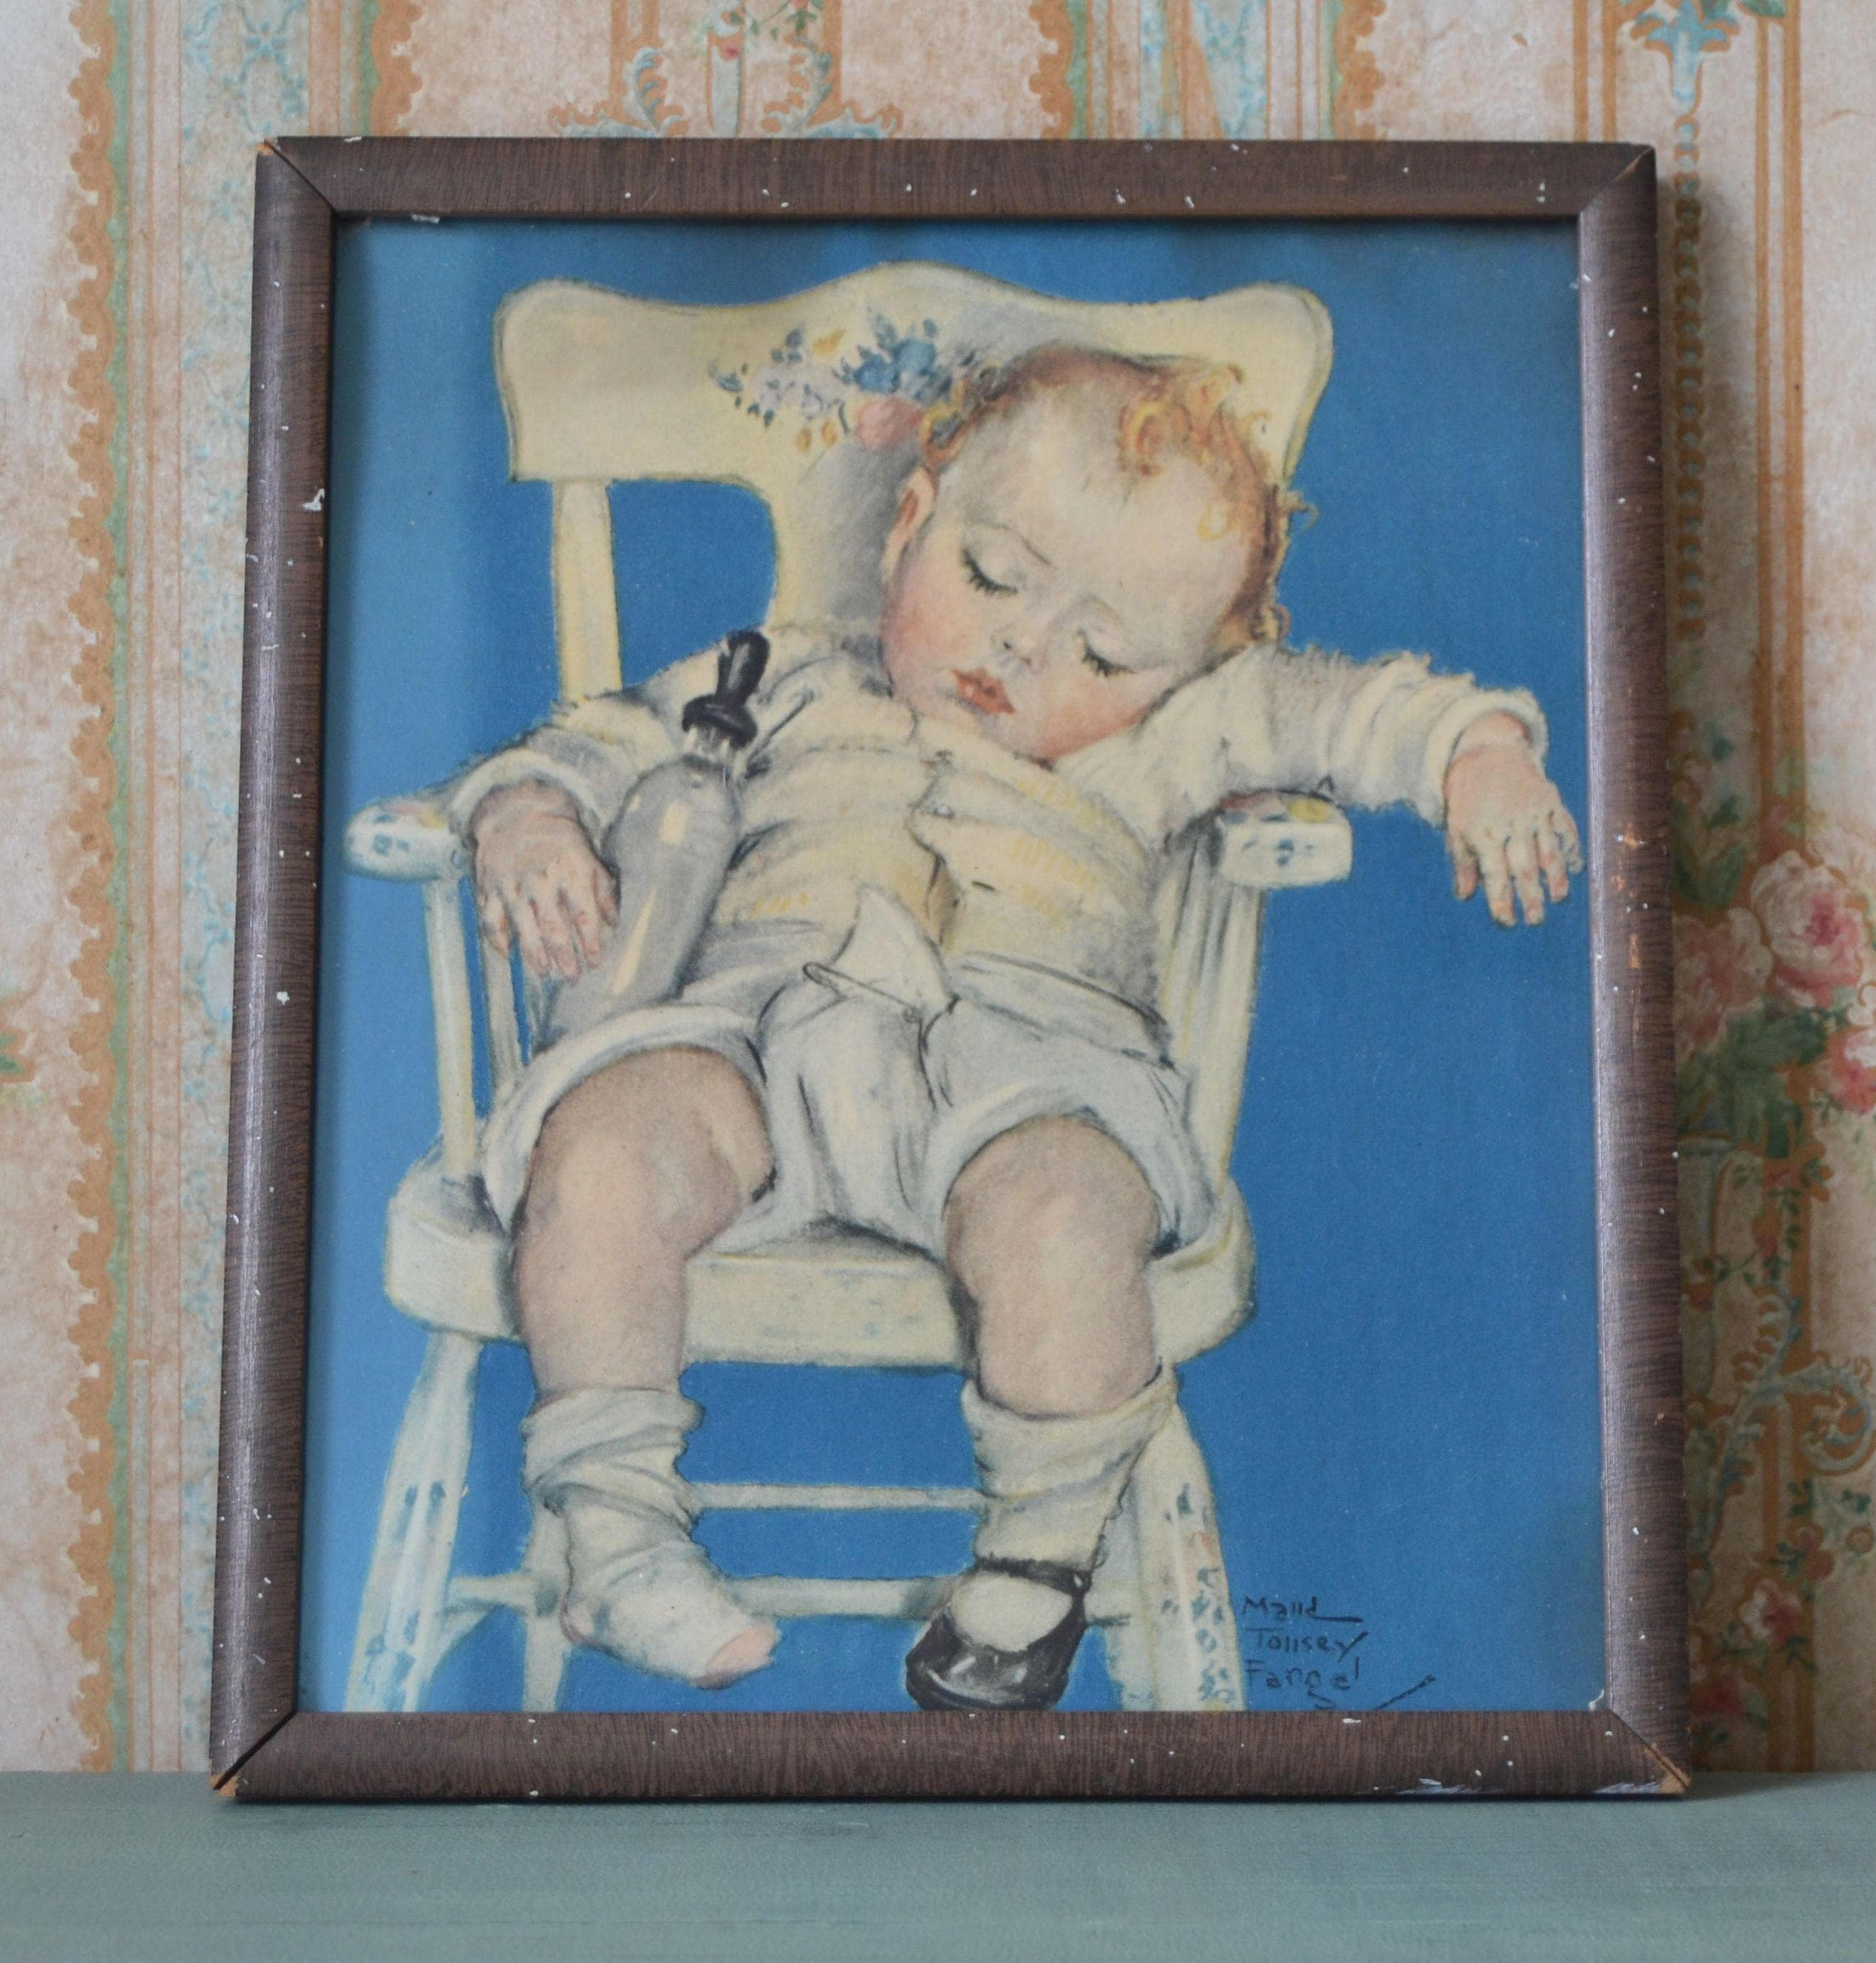 baby sleeping chair slipper chairs on sale vintage 1930 39s maud tousey fangel print in